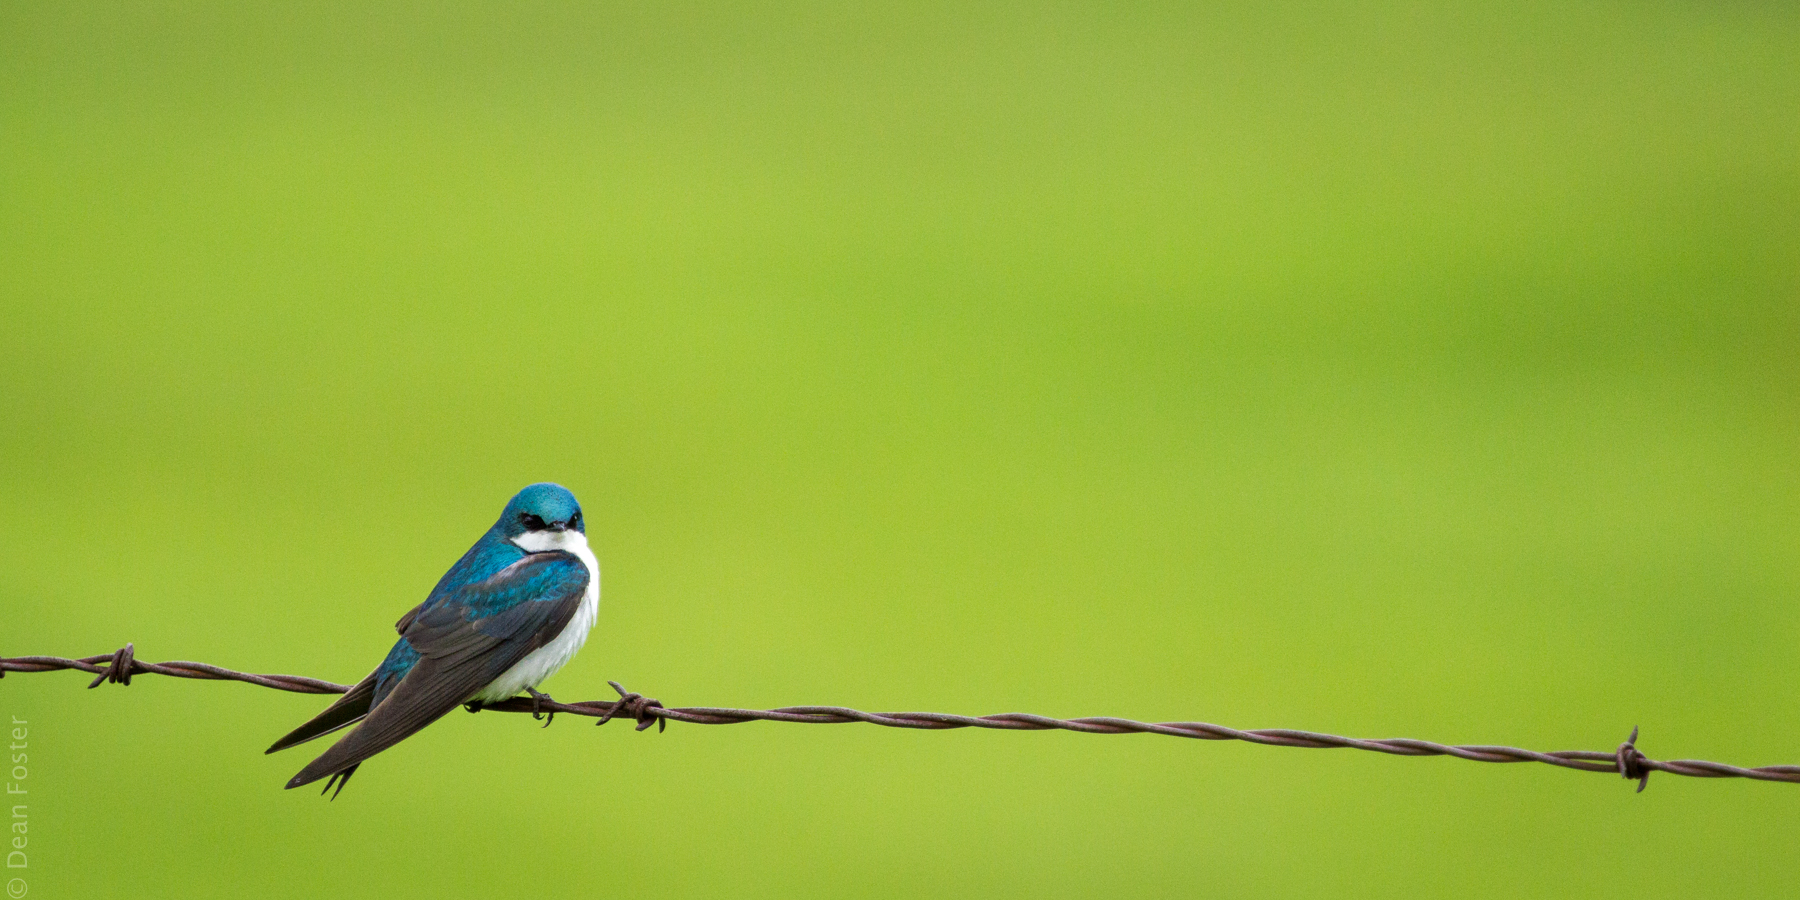 A tree swallow rests on barbed wire during the early spring